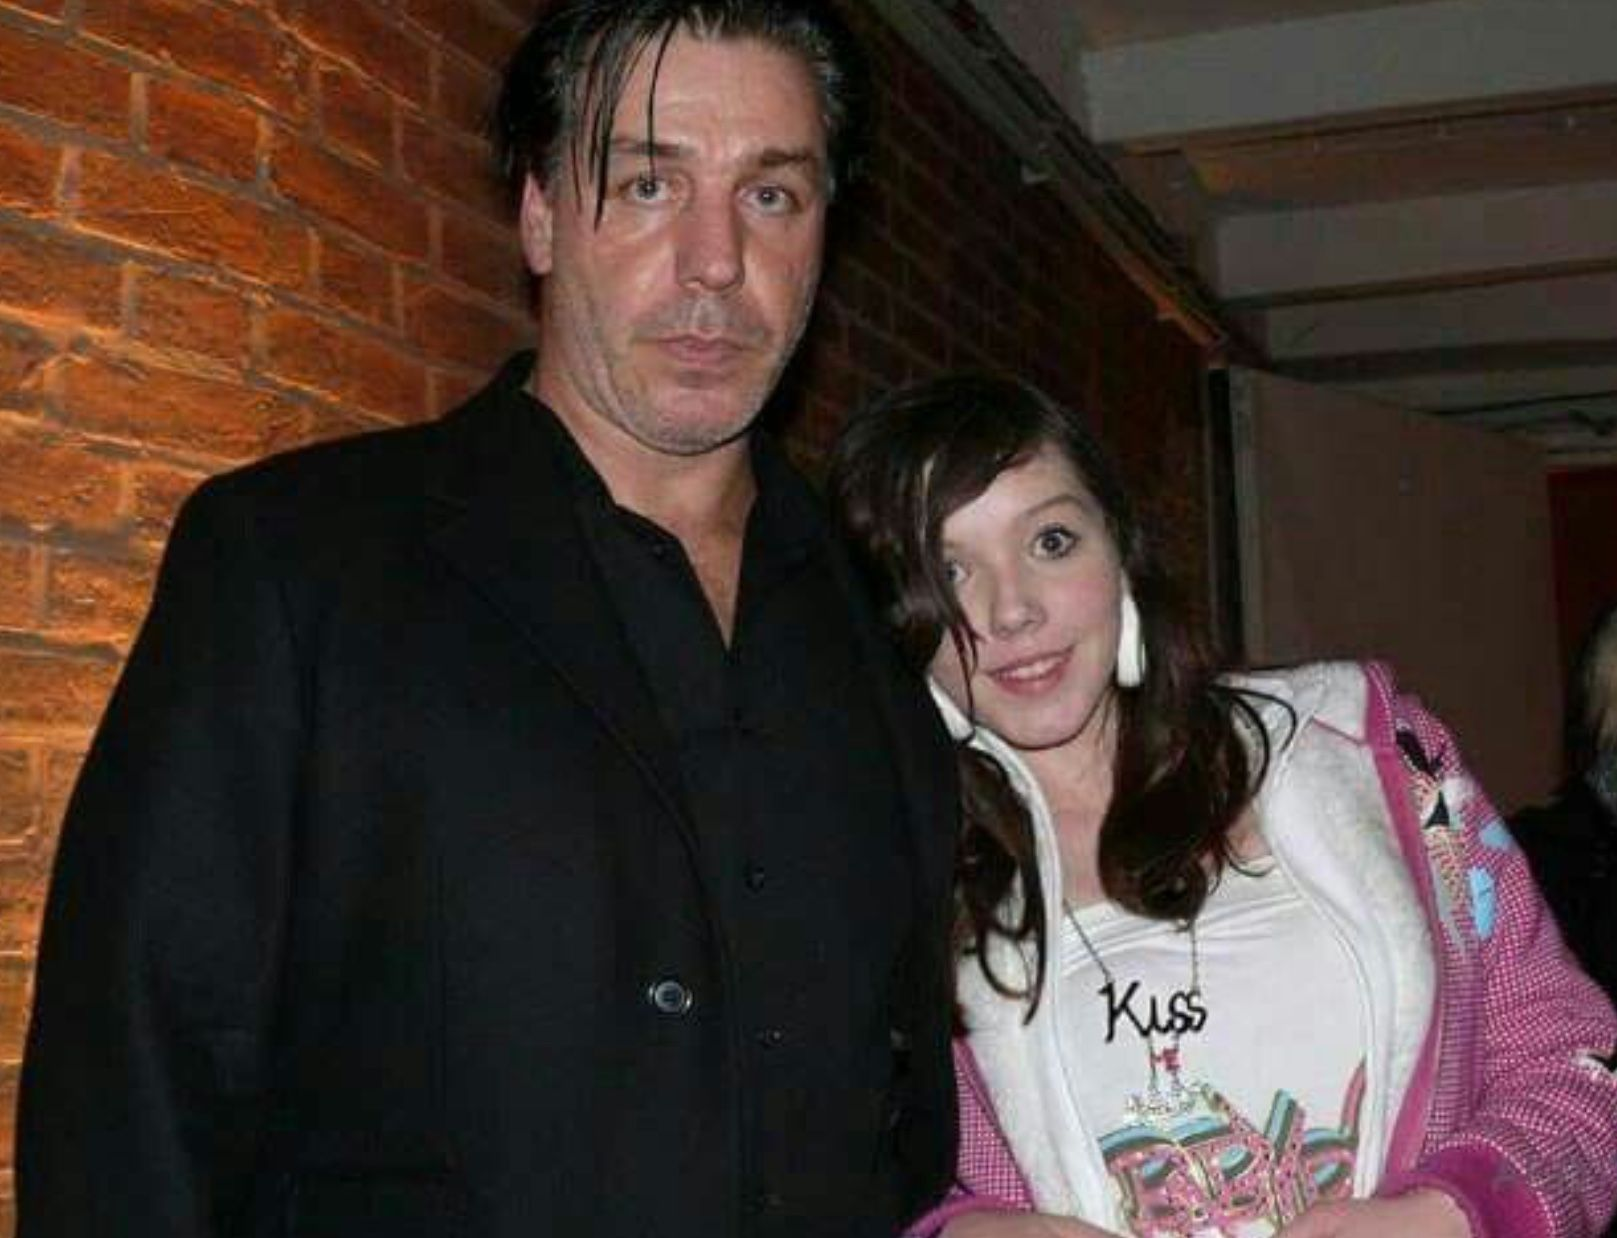 Till and one of his daughters | Till lindemann, Mtv, Deichkind